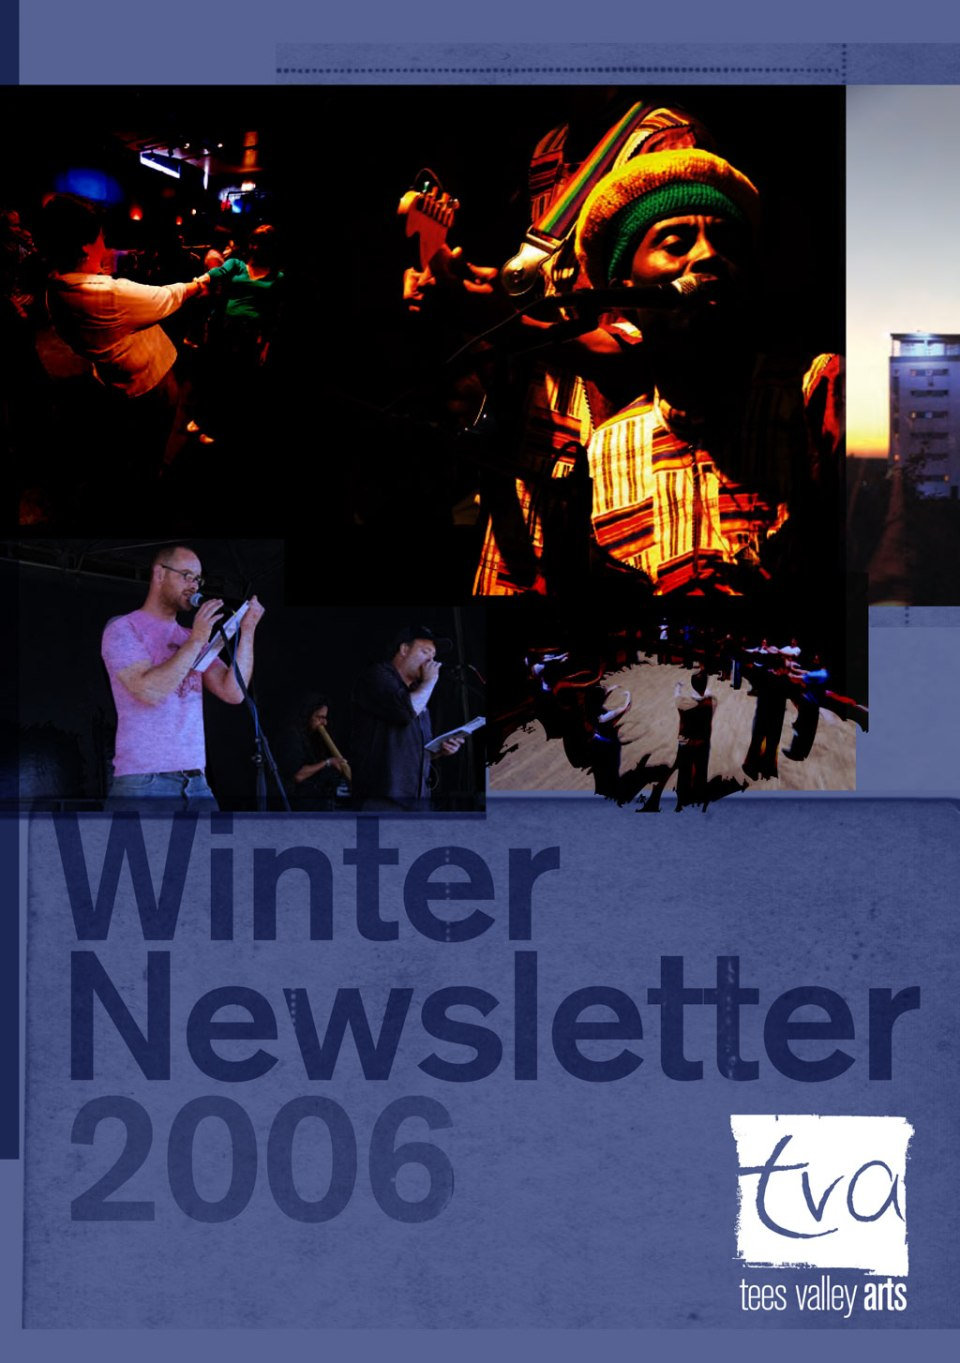 TVA Winter Newsletter 2006